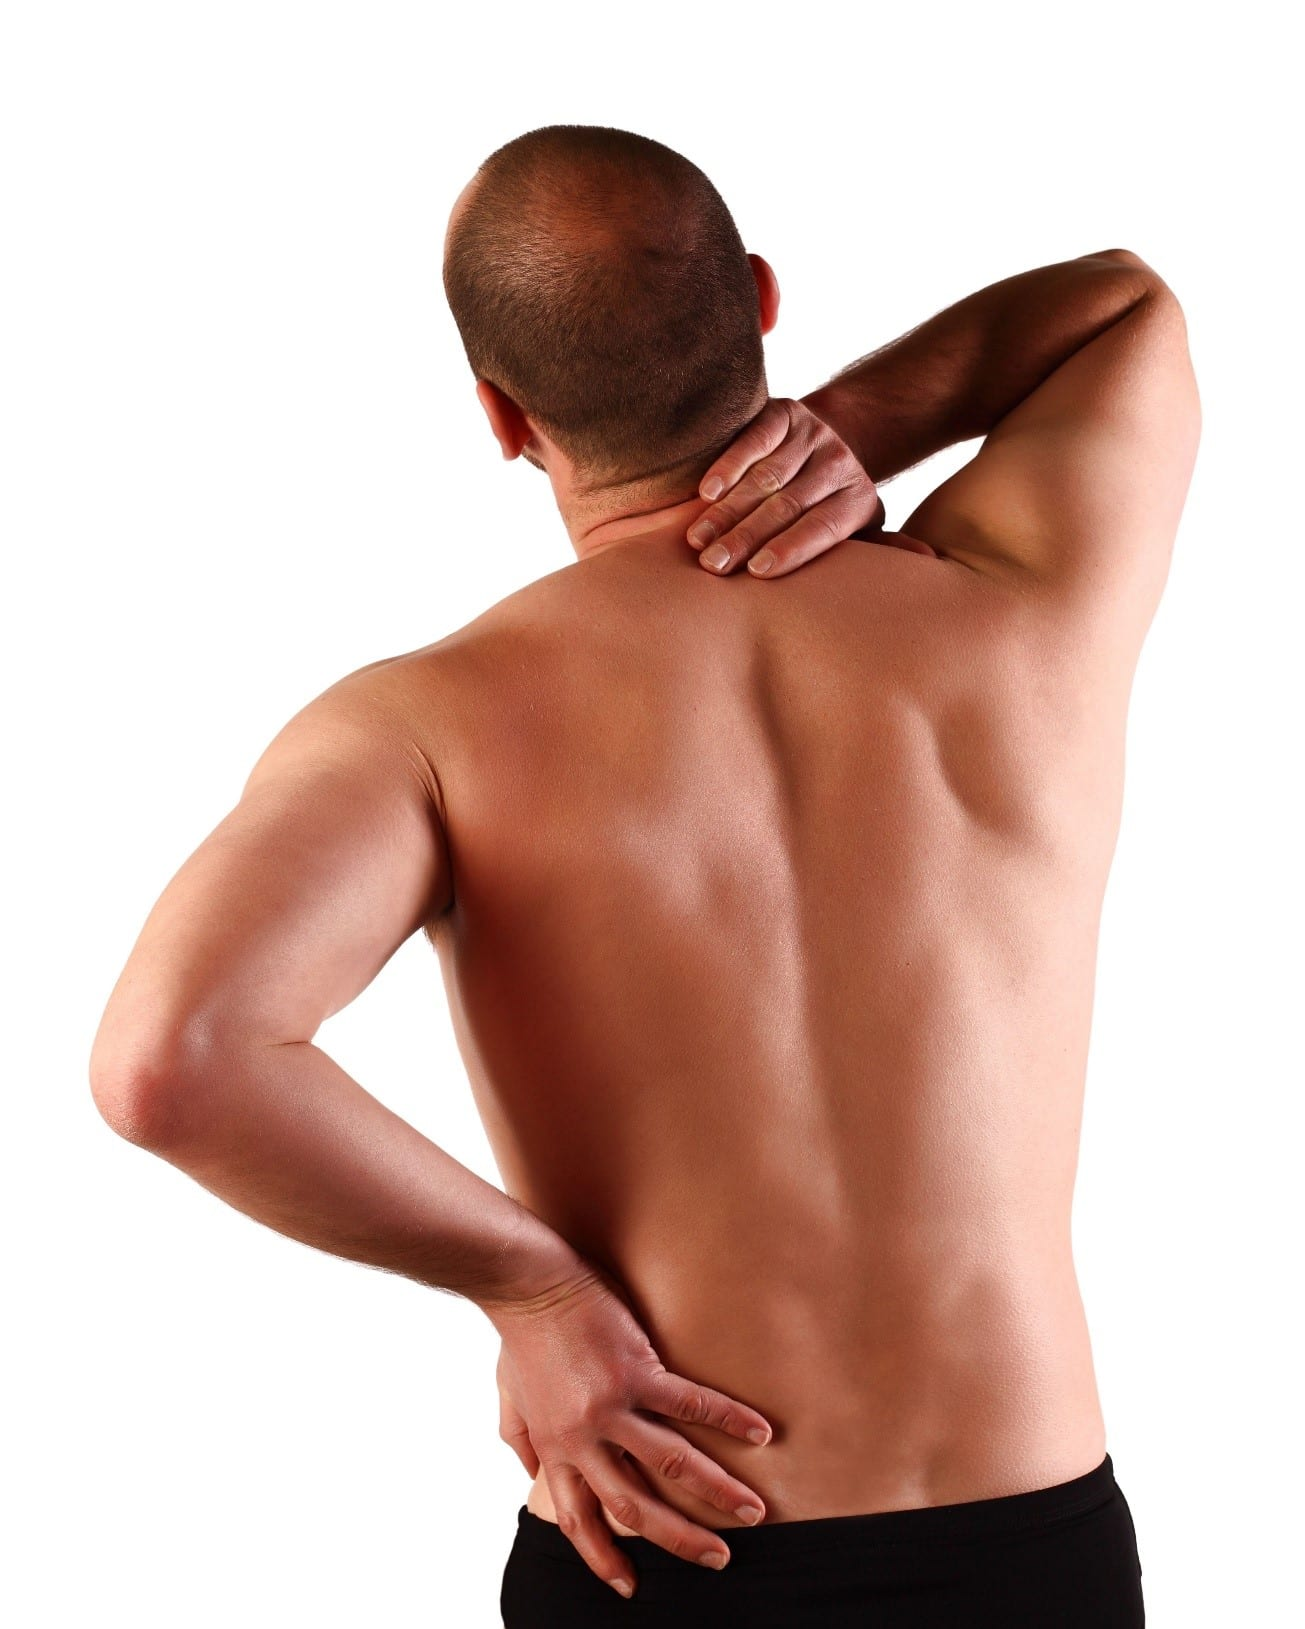 man wiht back and neck pain - Back Pain and Neurosurgery Specialists in Fort Myers, FL